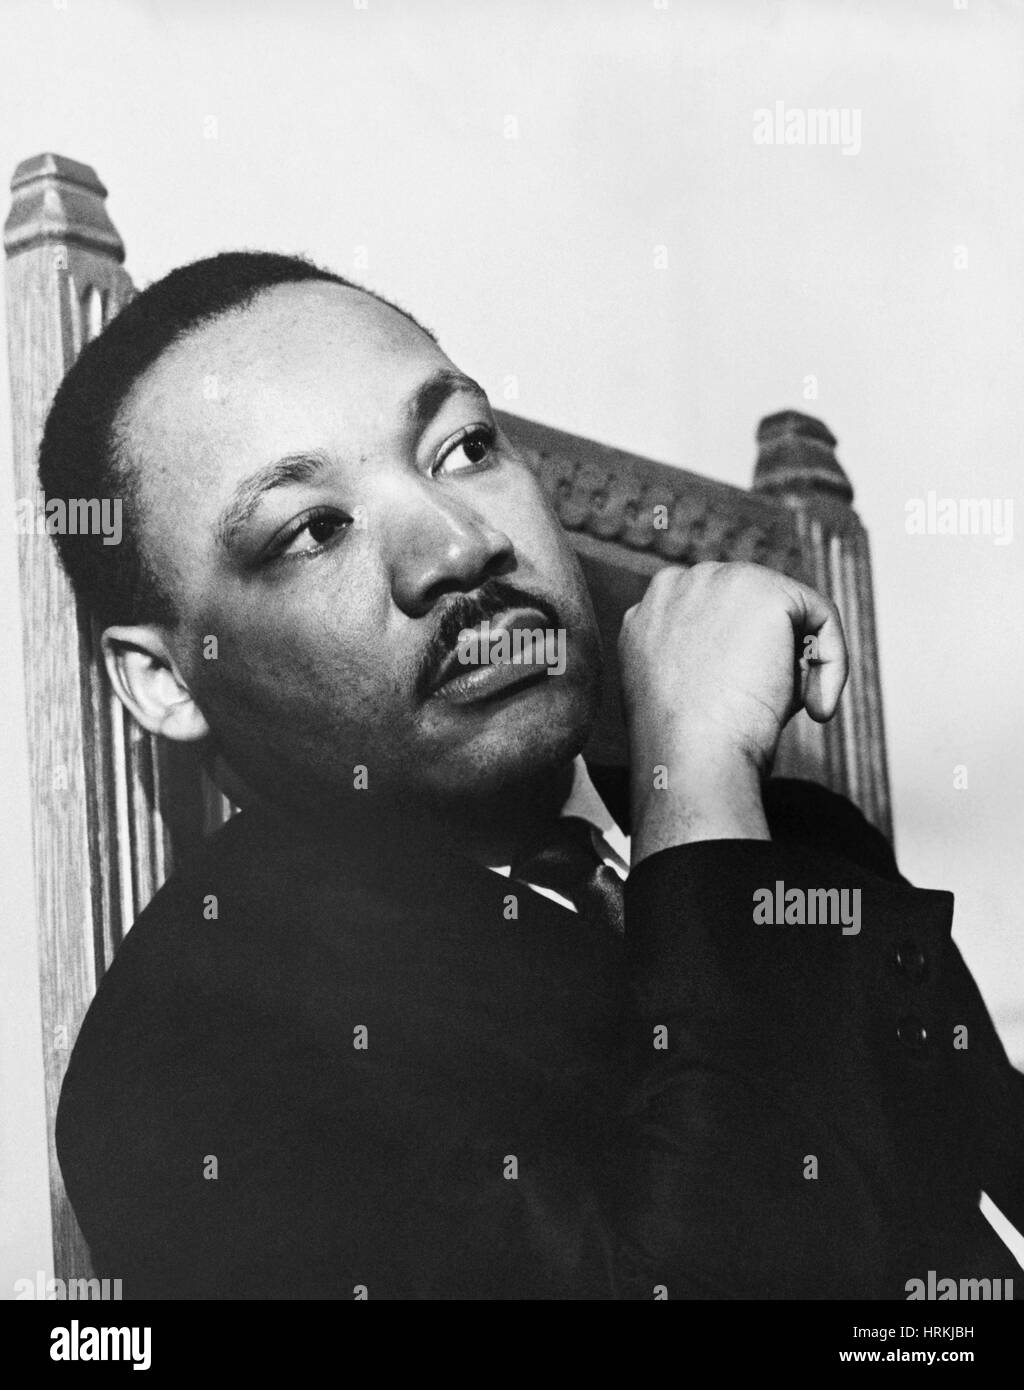 Martin Luther King, Jr., Civil Rights Leader - Stock Image